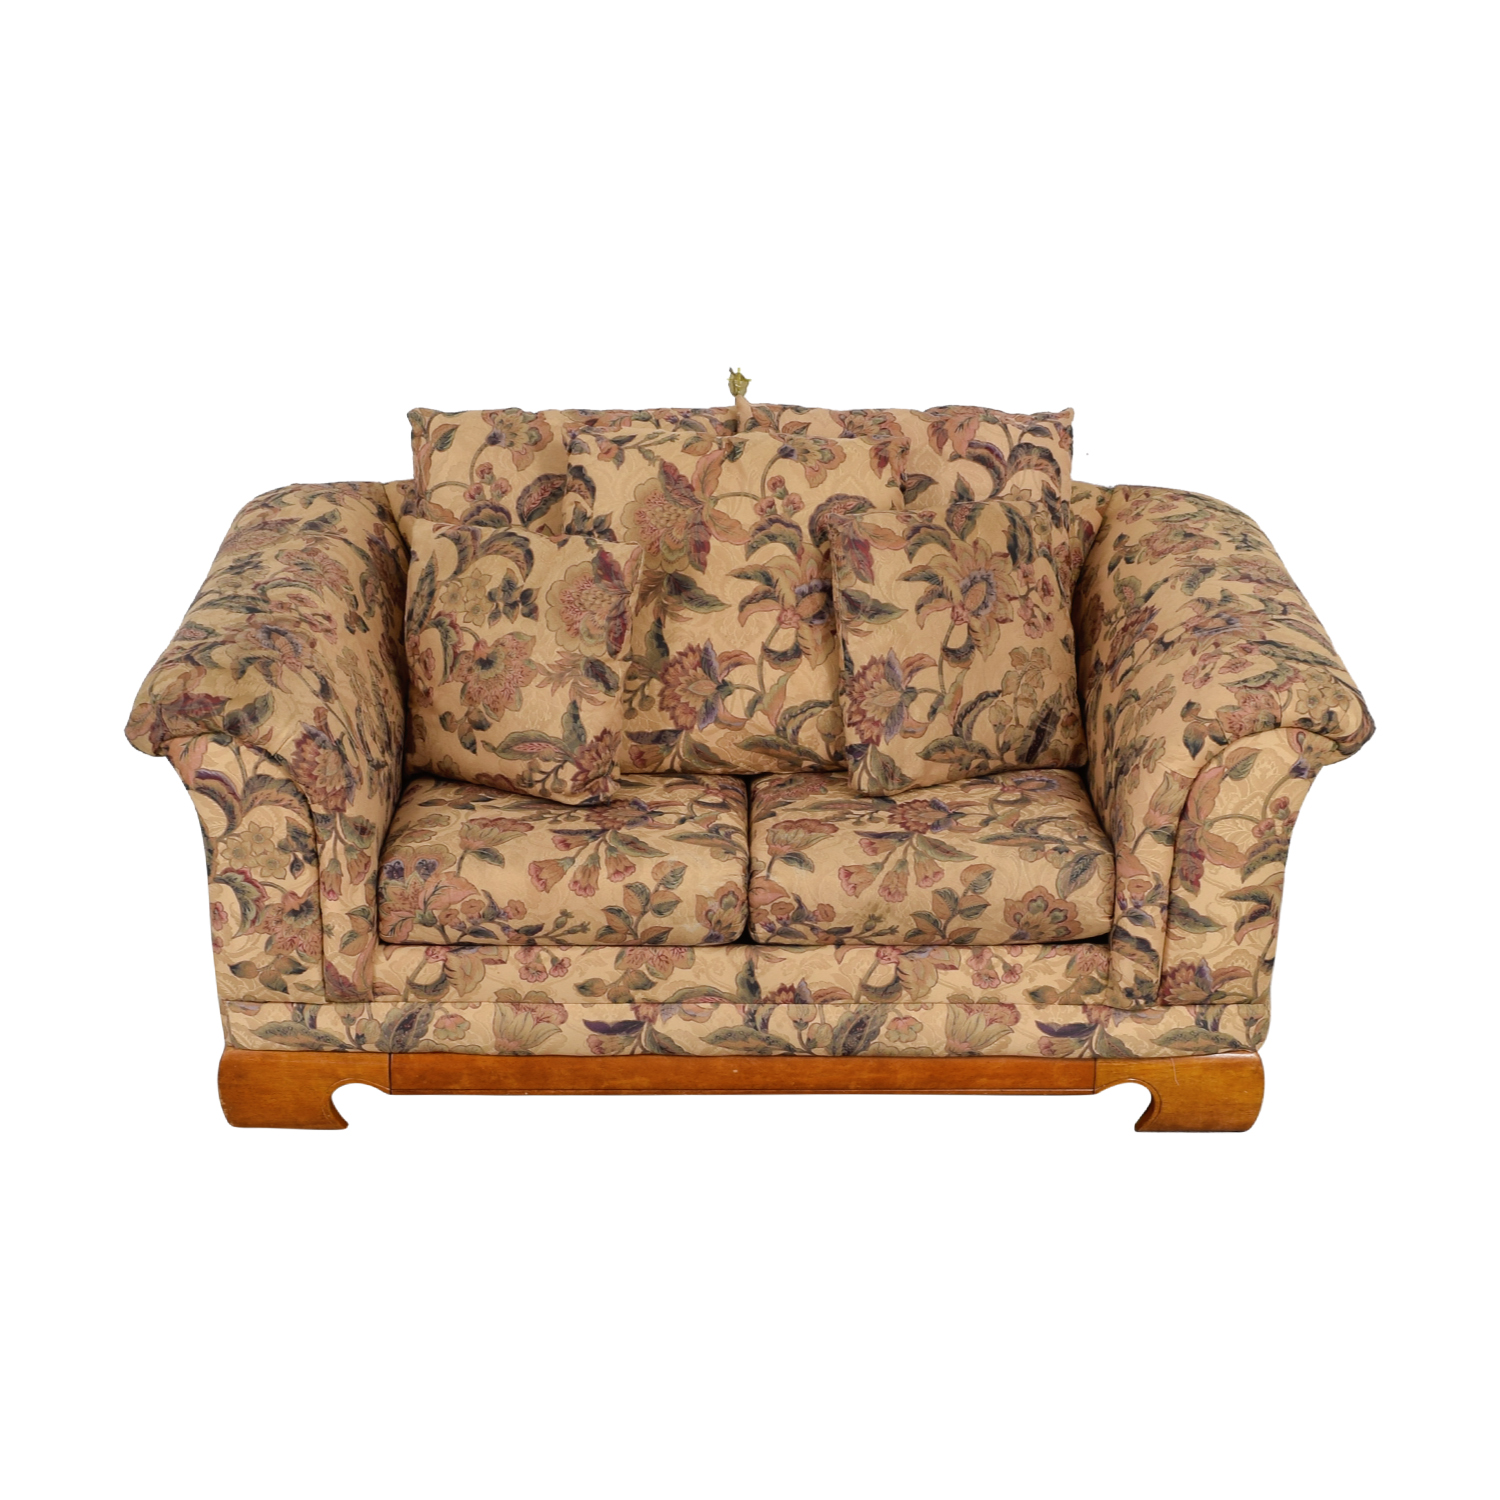 Sealy Furniture Sealy Furniture Floral Two-Cushion Loveseat for sale